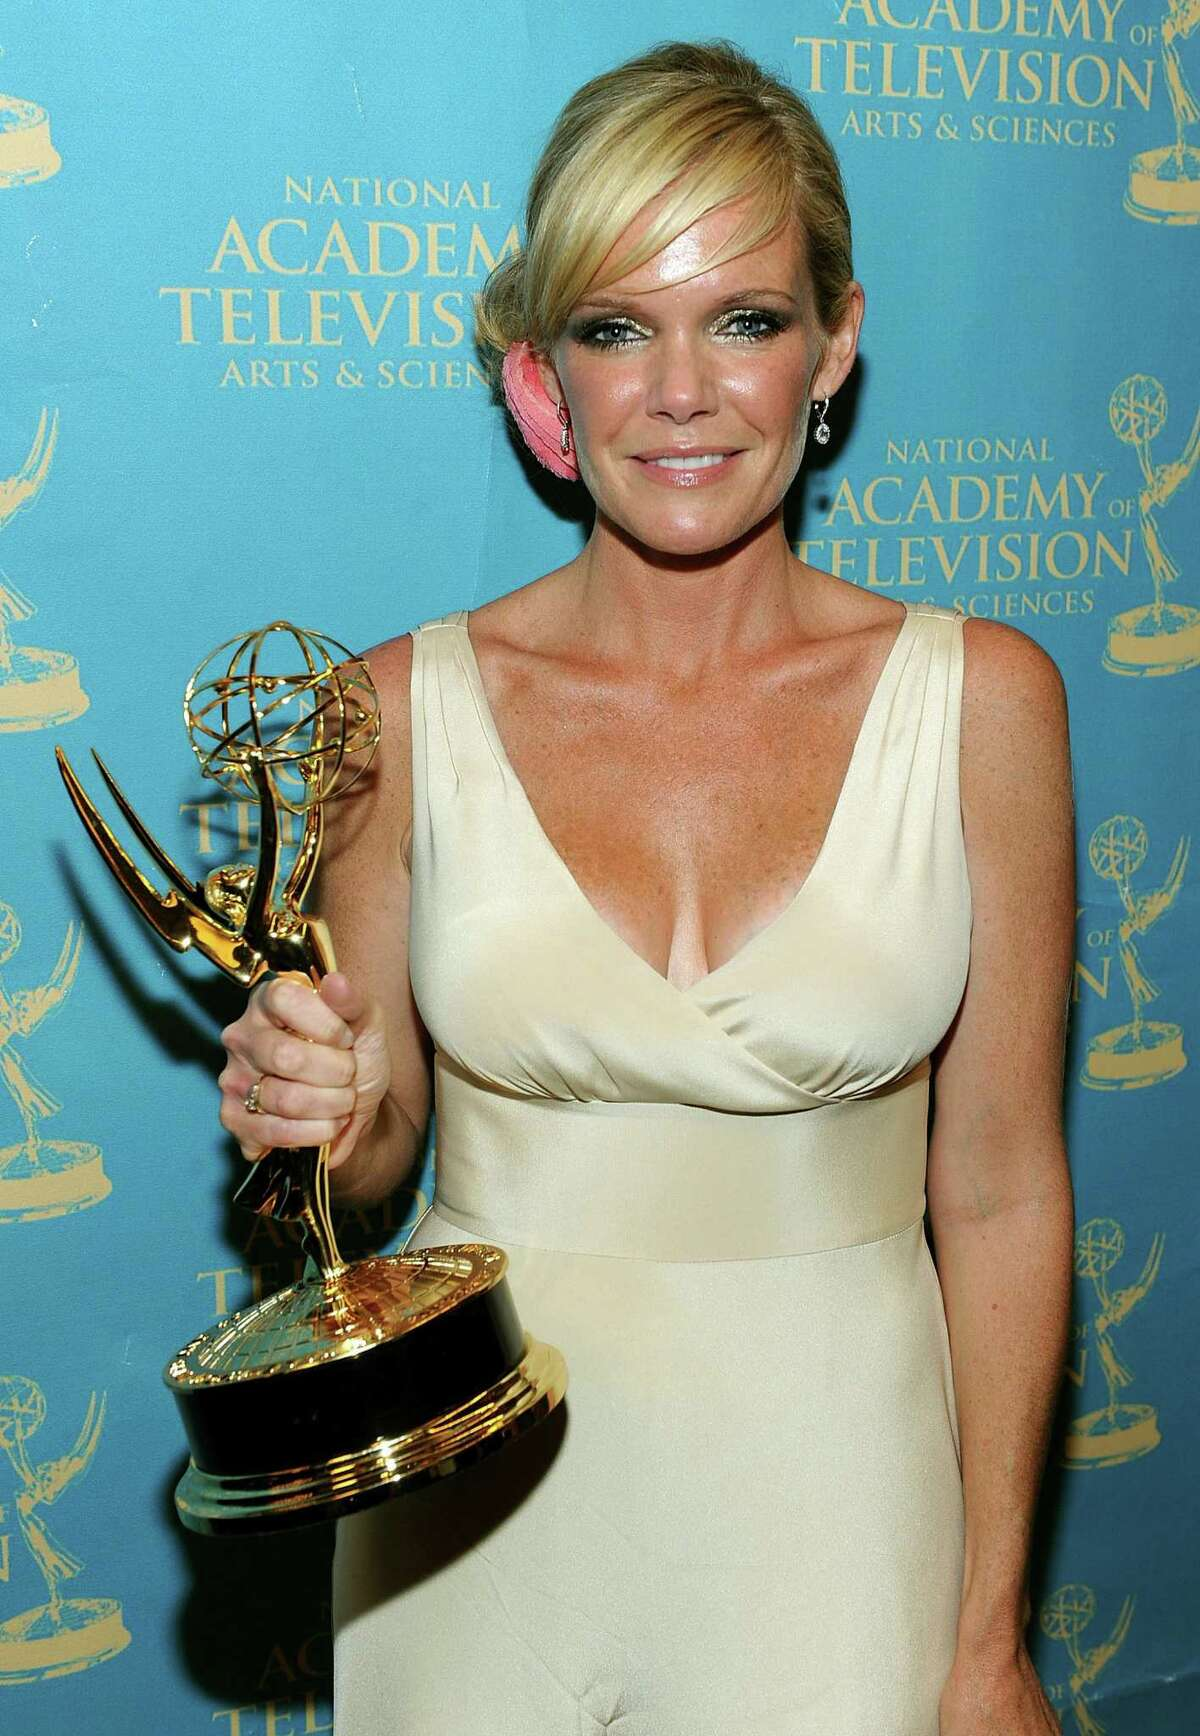 LAS VEGAS - JUNE 27: Actress Maura West poses with the Outstanding Lead Actress Award in the press room at the 37th Annual Daytime Entertainment Emmy Awards held at the Las Vegas Hilton on June 27, 2010 in Las Vegas, Nevada. (Photo by Frazer Harrison/Getty Images for ATI)